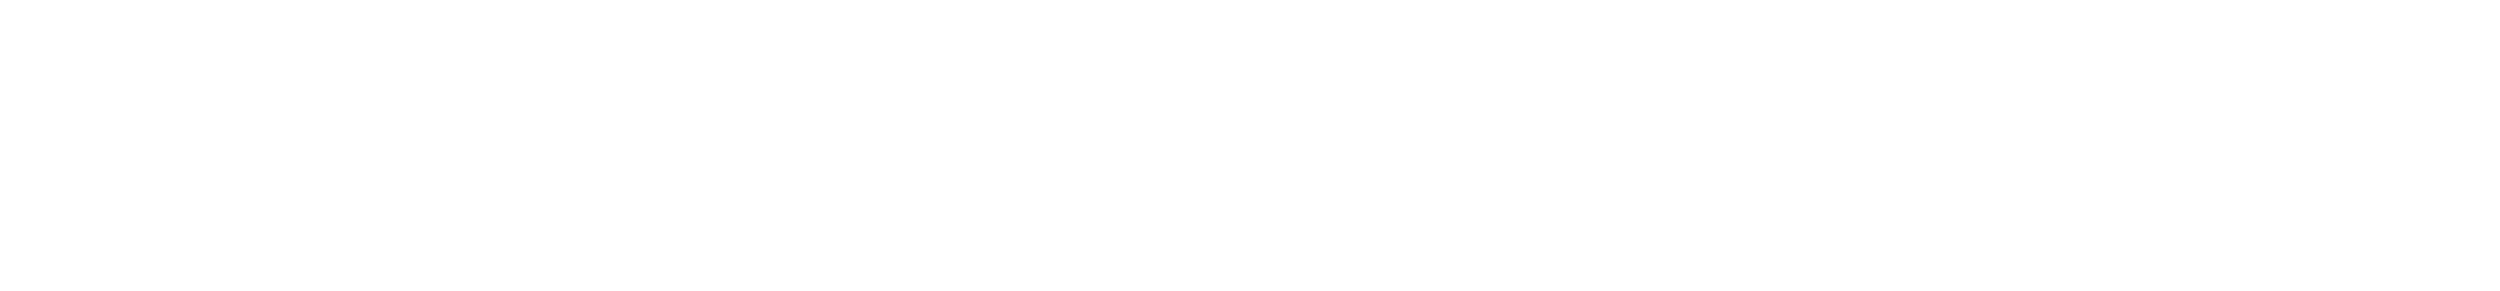 X_Logo_SITEFOOTER-01-01.png